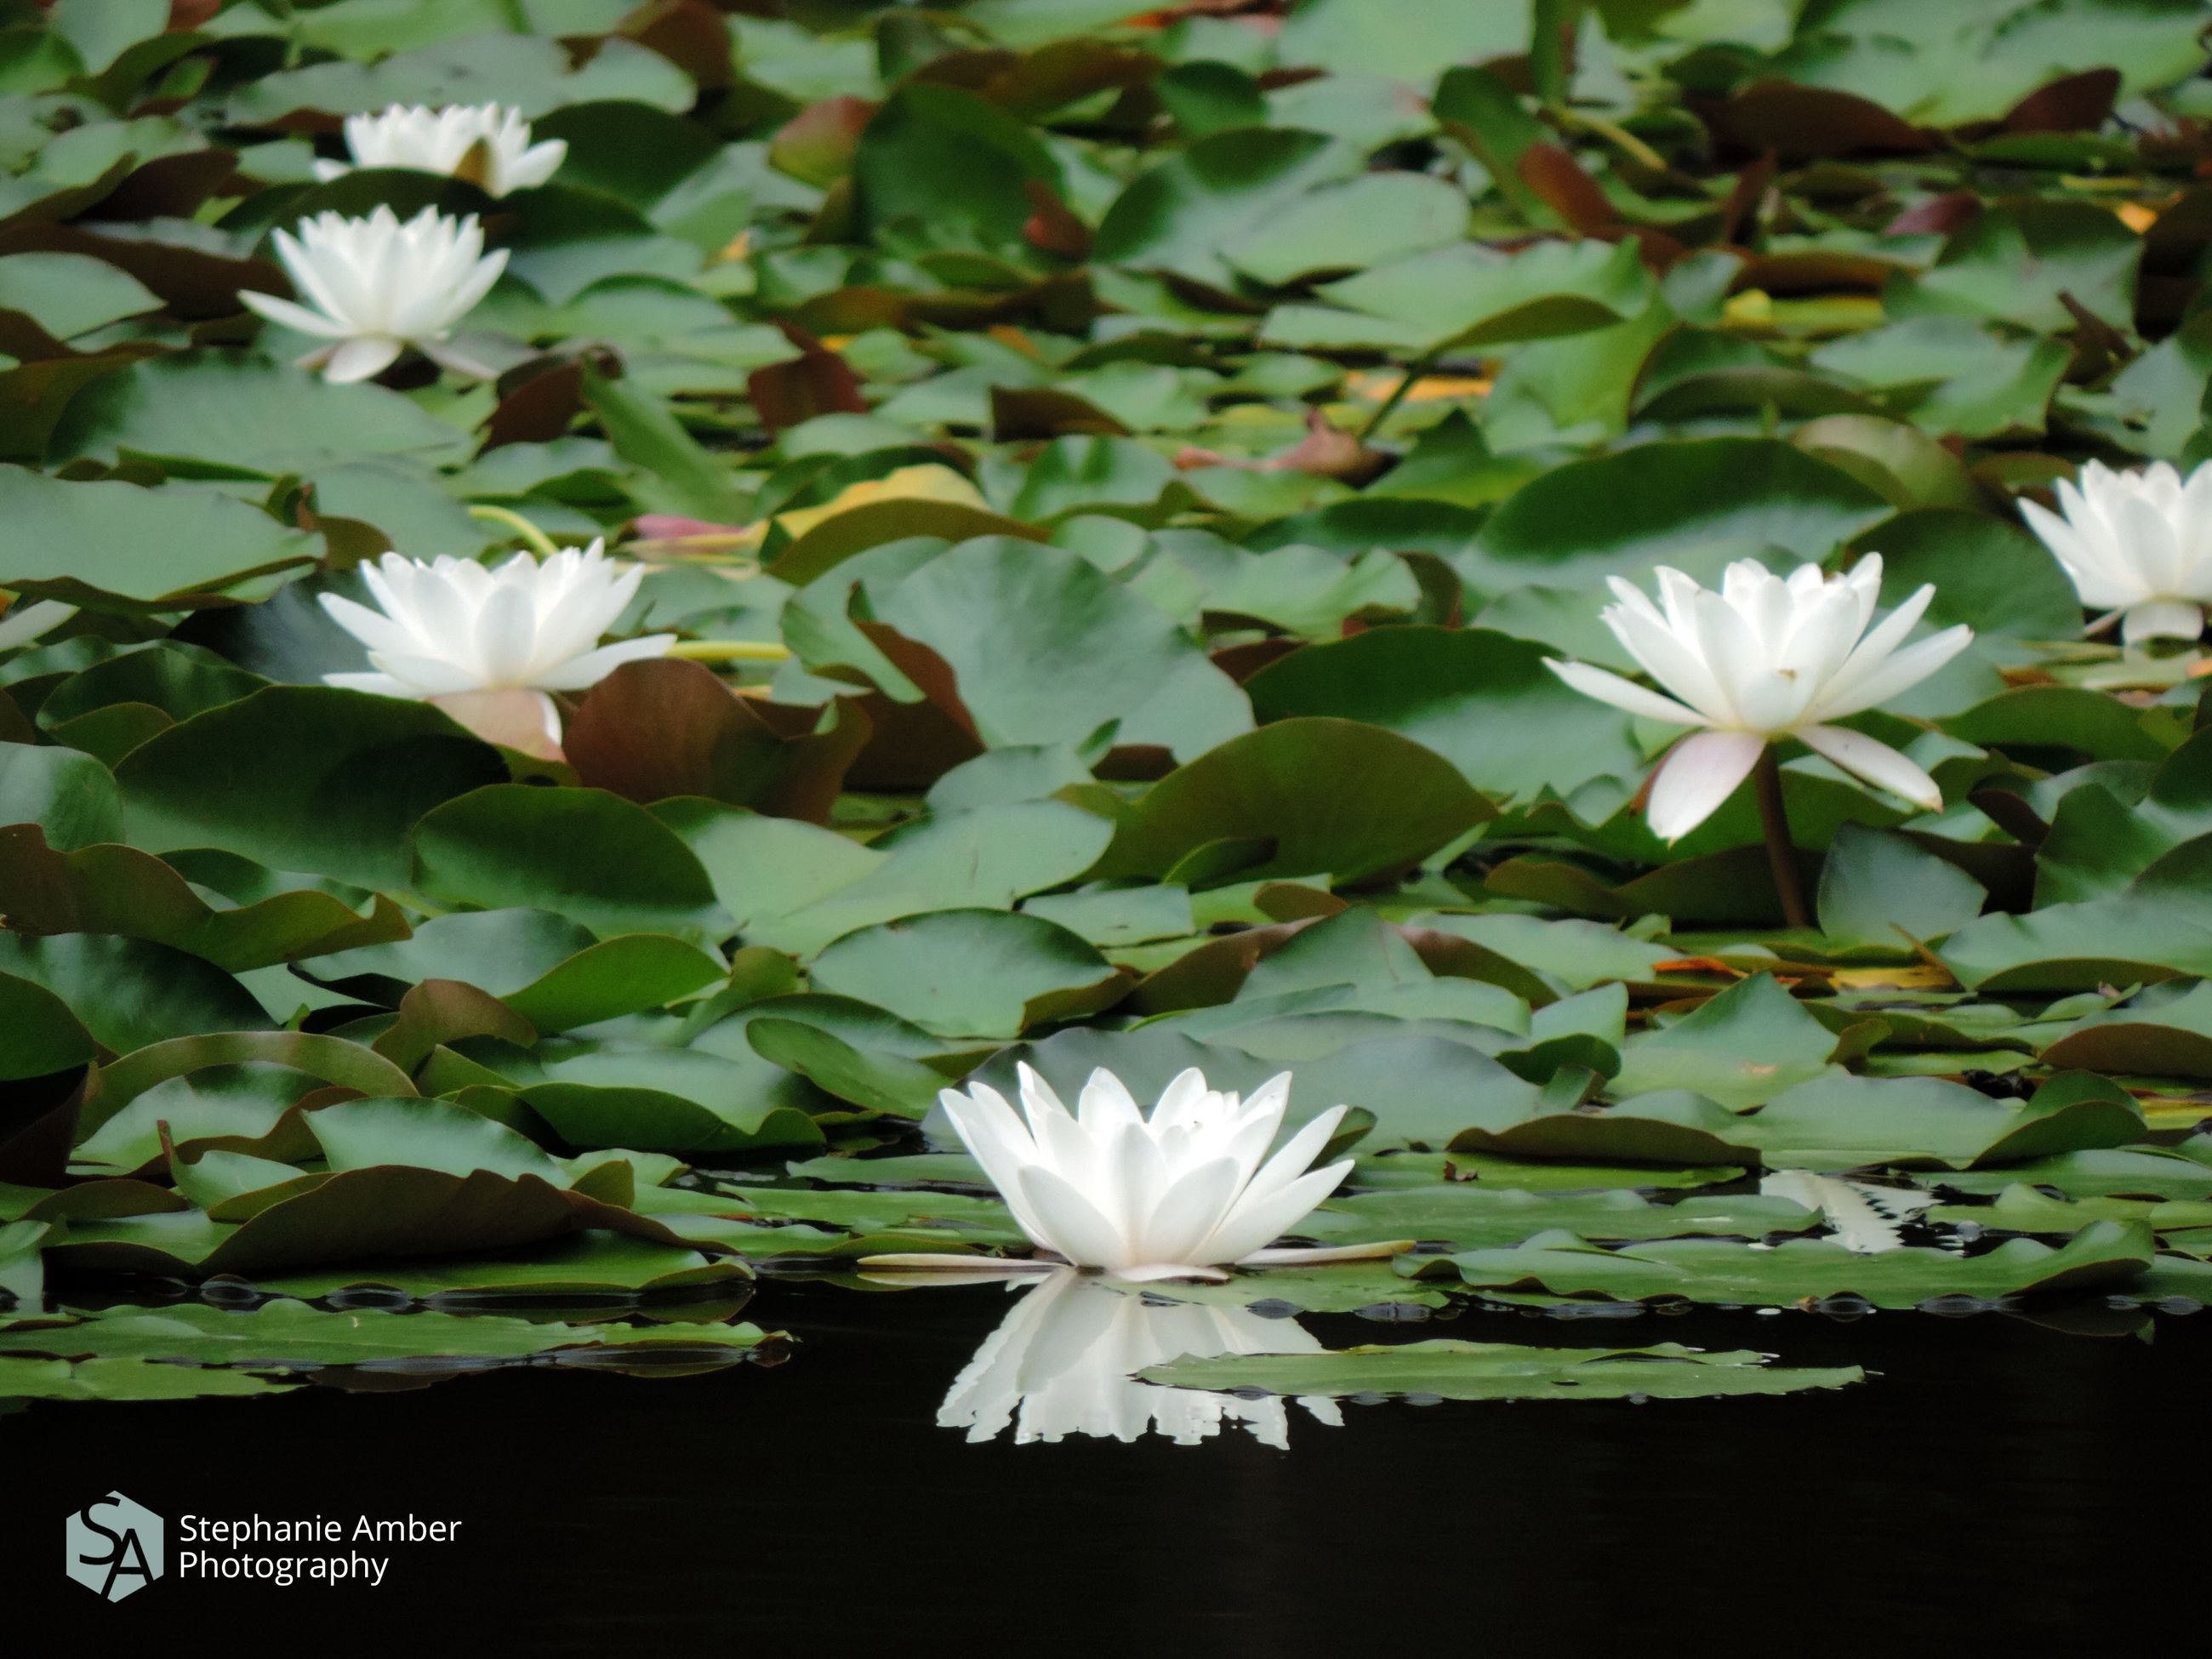 flowering plant, beauty in nature, plant, freshness, vulnerability, flower, petal, fragility, inflorescence, growth, flower head, white color, close-up, nature, leaf, plant part, no people, water lily, day, green color, floating on water, lotus water lily